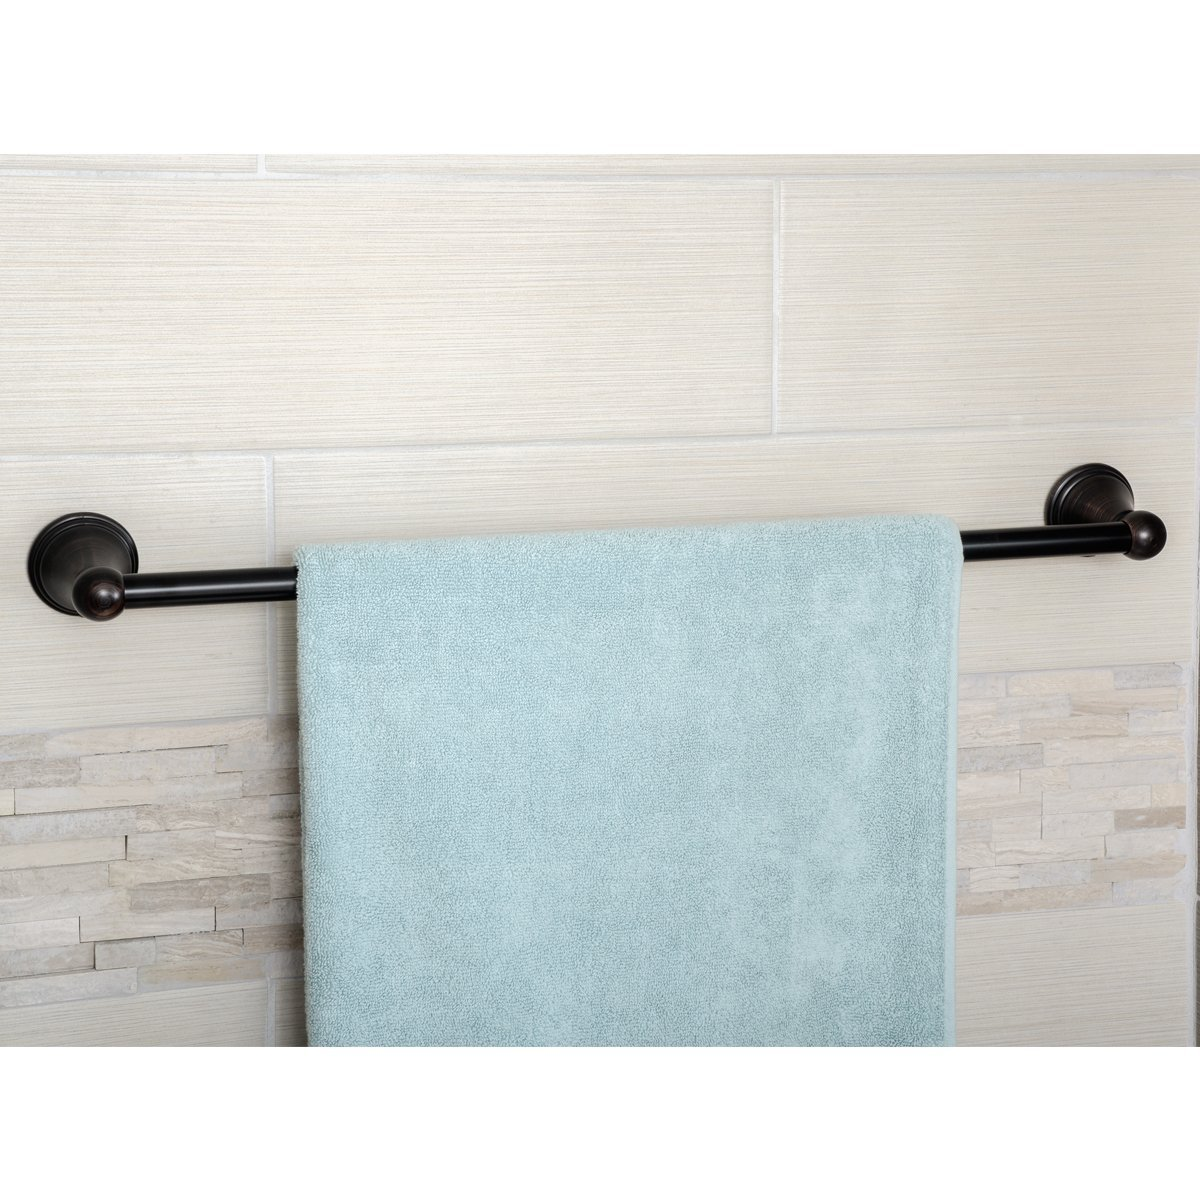 AmazonBasics Modern Towel Bar - Oil Rubbed Bronze, 24-inch ...